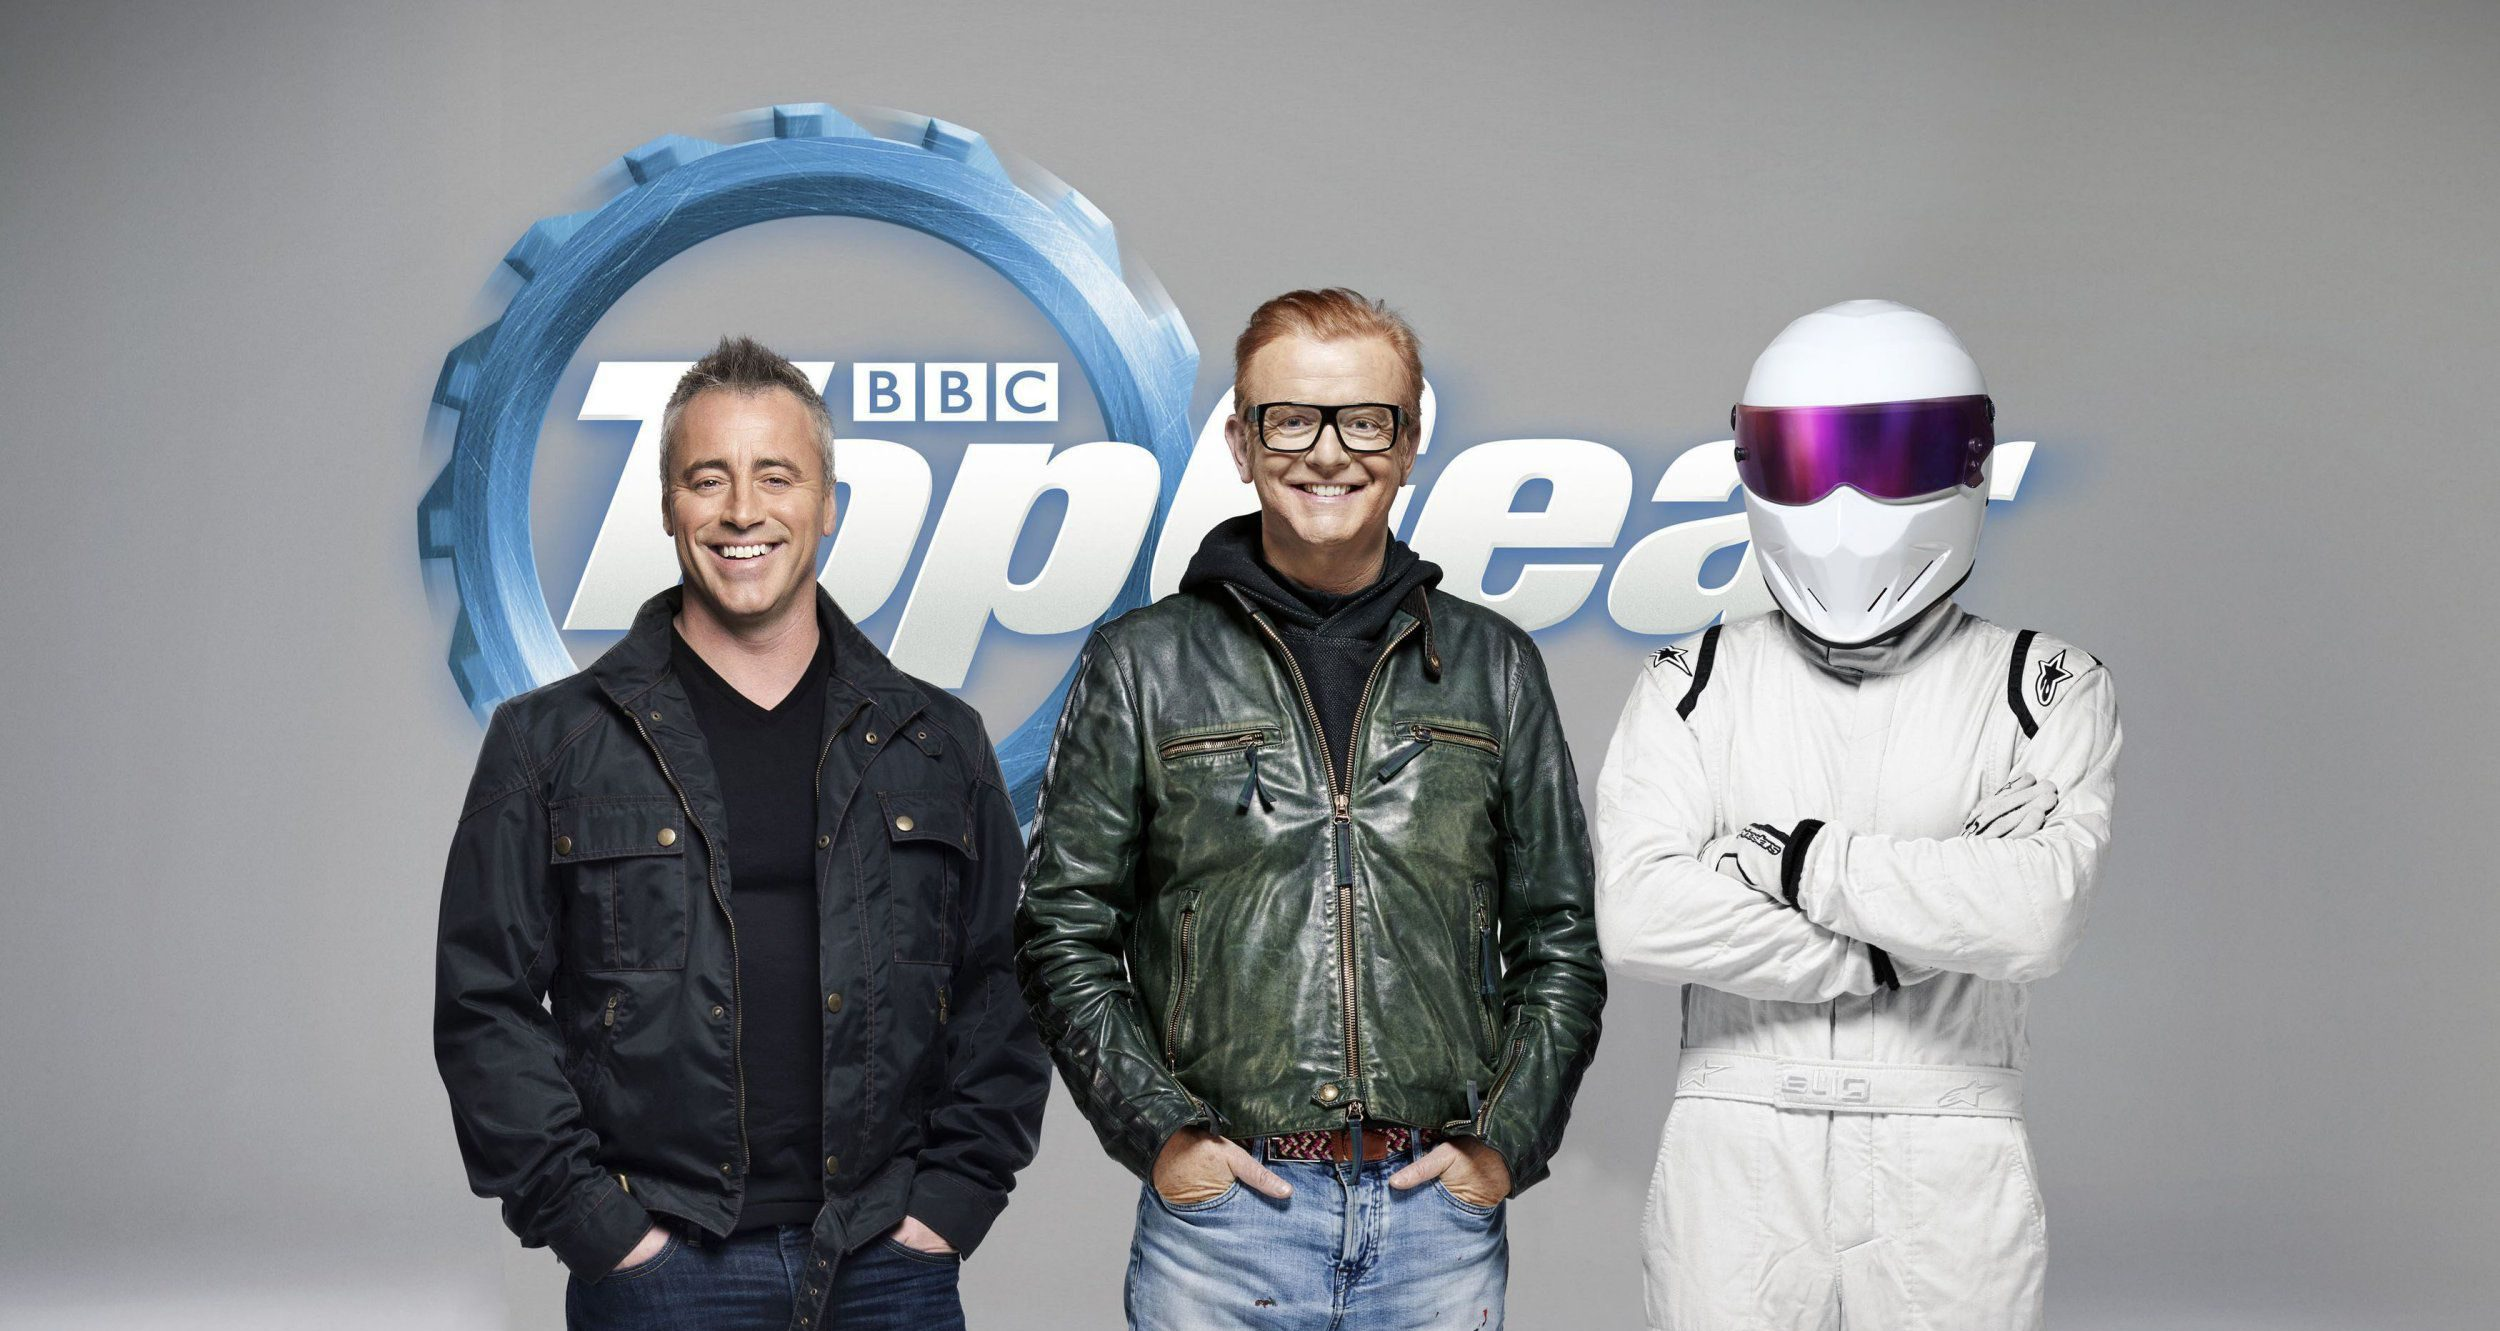 Actor Matt LeBlanc with Chris Evans and The Stig, as LeBlanc has said he cannot believe the reaction to his Top Gear appointment. For use in UK, Ireland or Benelux countries only Undated BBC handout photo of Friends PRESS ASSOCIATION Photo. Issue date: Friday February 5, 2016. The revamped version of the BBC show is due to air in May, with the American star joining Chris Evans at the helm. See PA story SHOWBIZ TopGear. Photo credit should read: BBC/PA Wire NOTE TO EDITORS: This handout photo may only be used in for editorial reporting purposes for the contemporaneous illustration of events, things or the people in the image or facts mentioned in the caption. Reuse of the picture may require further permission from the copyright holder.